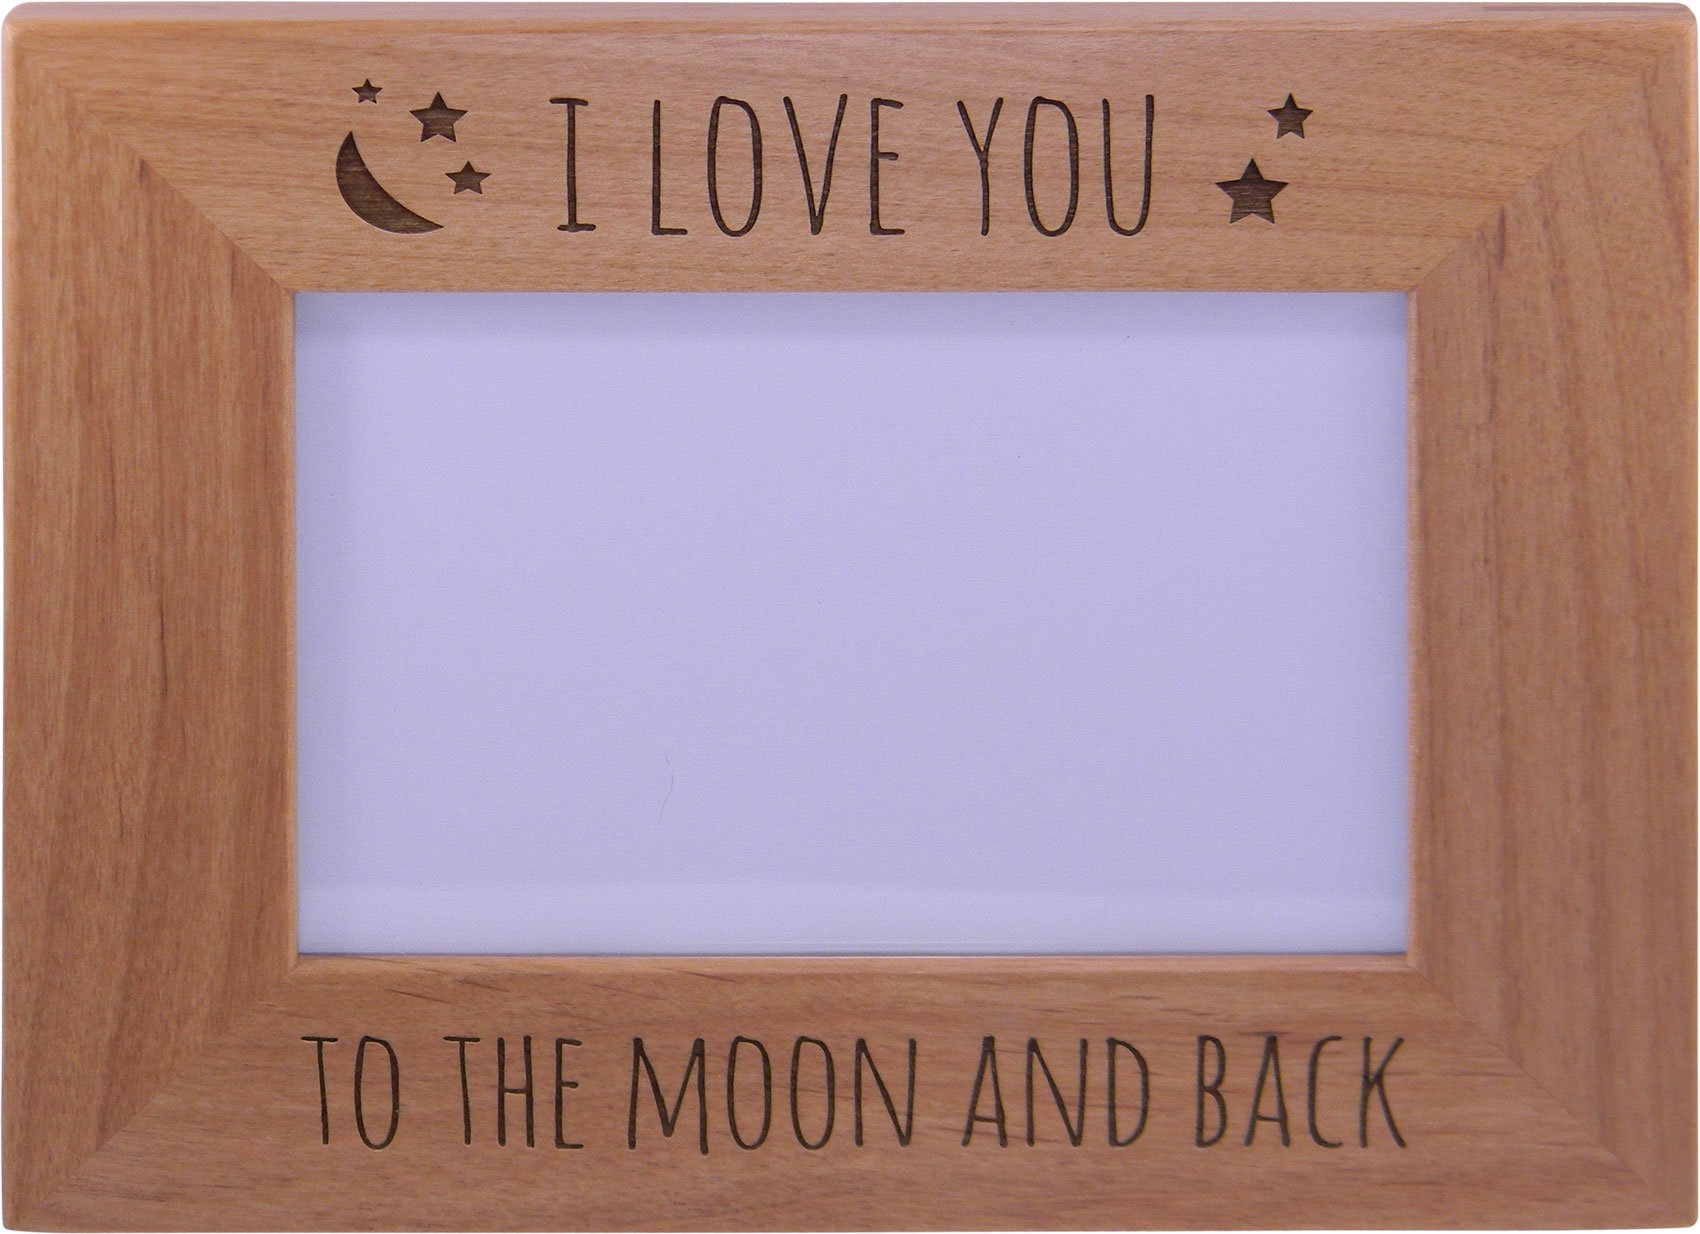 I Love You To The Moon And Back - Wood Picture Frame Holds 4x6 Inch ...